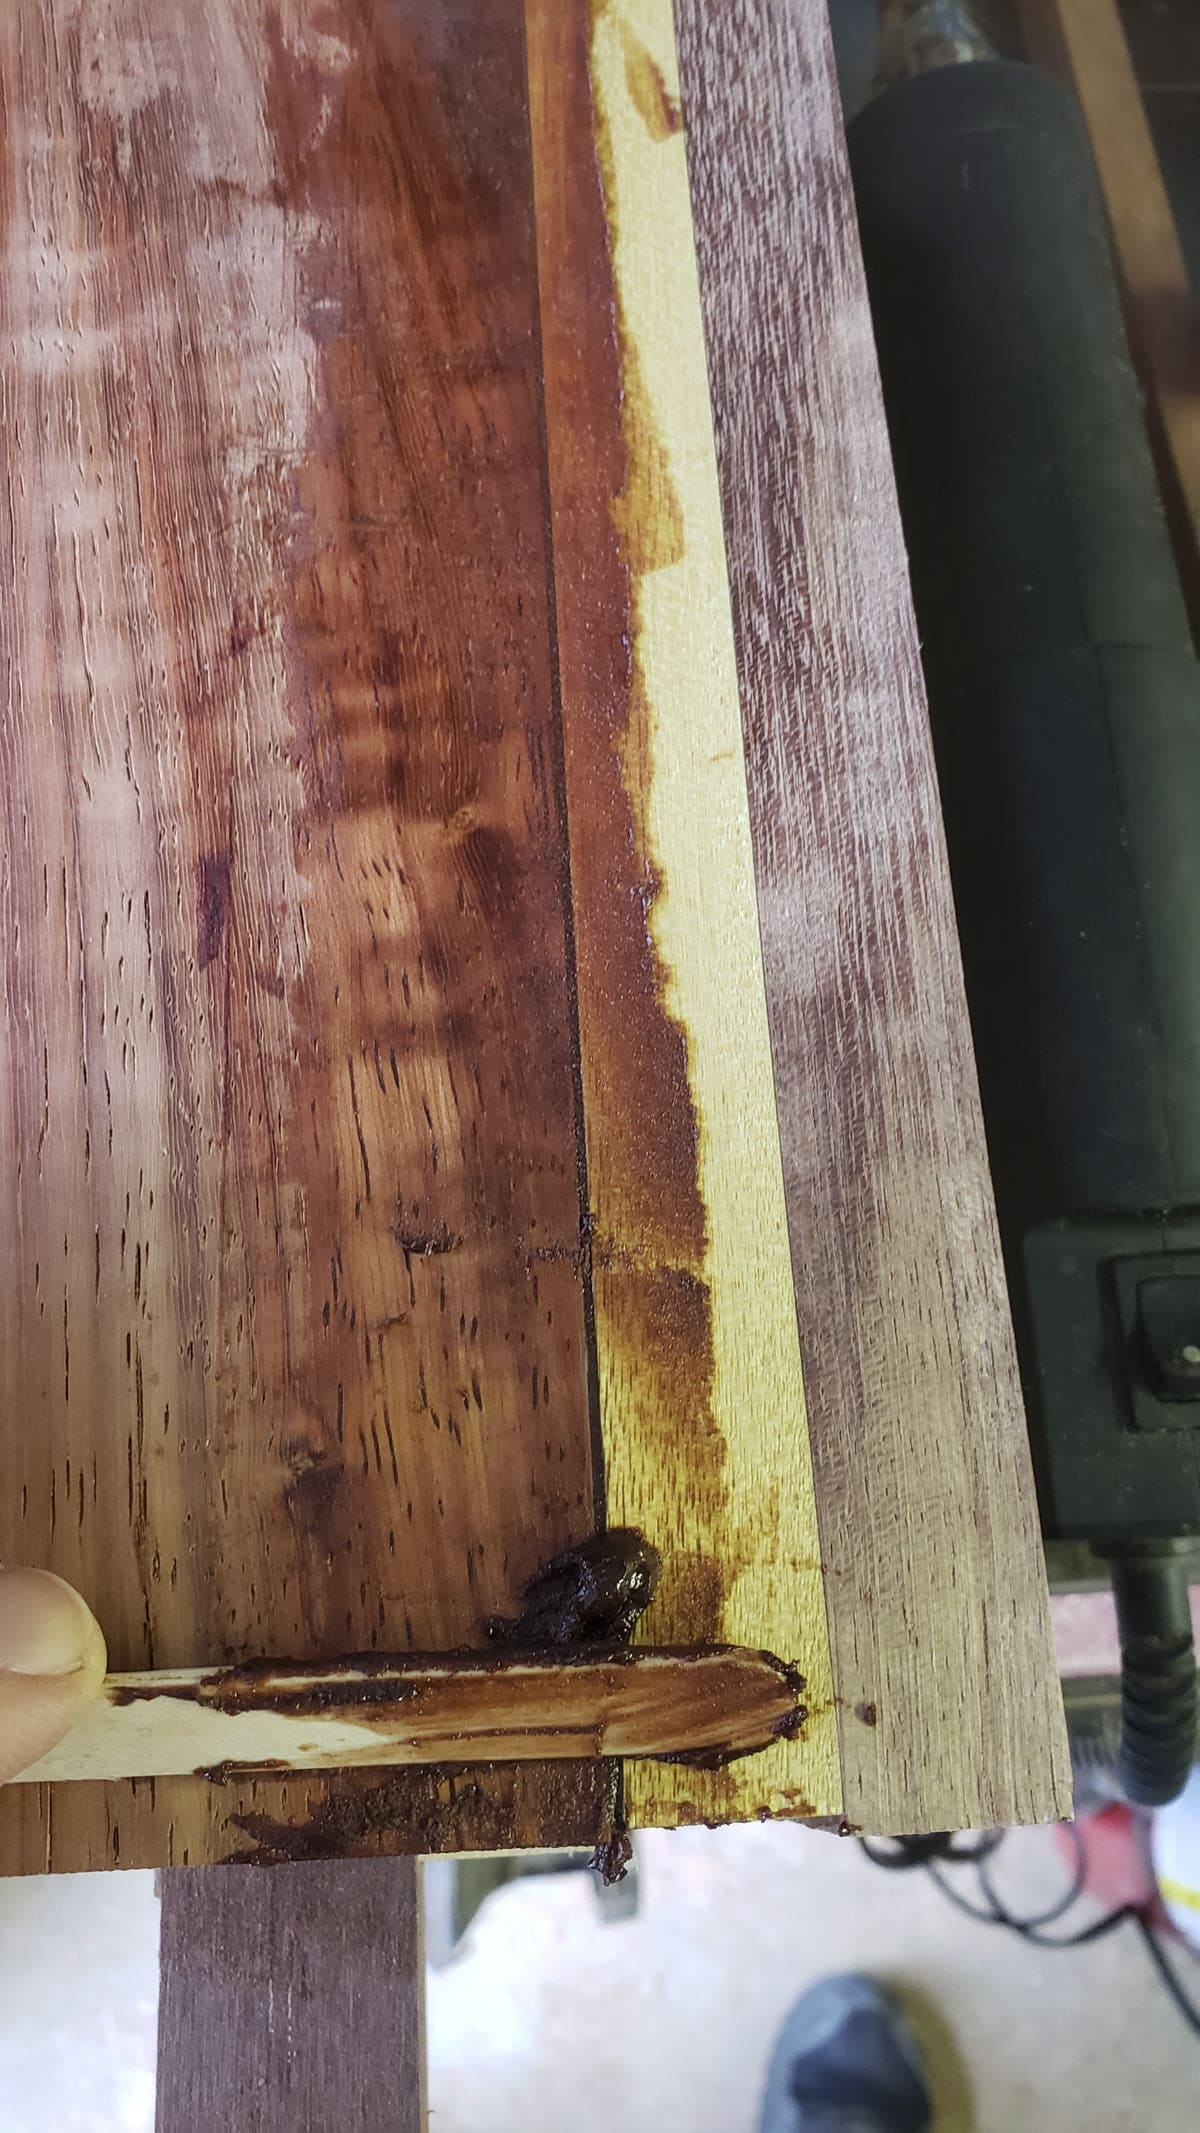 Two boards with a small gap are seen on a table. Dark epoxy has been pressed into the crack, and is seen smeared along the surface. A popsicle stick at an angle is seen plowing the adhesive into the crack.